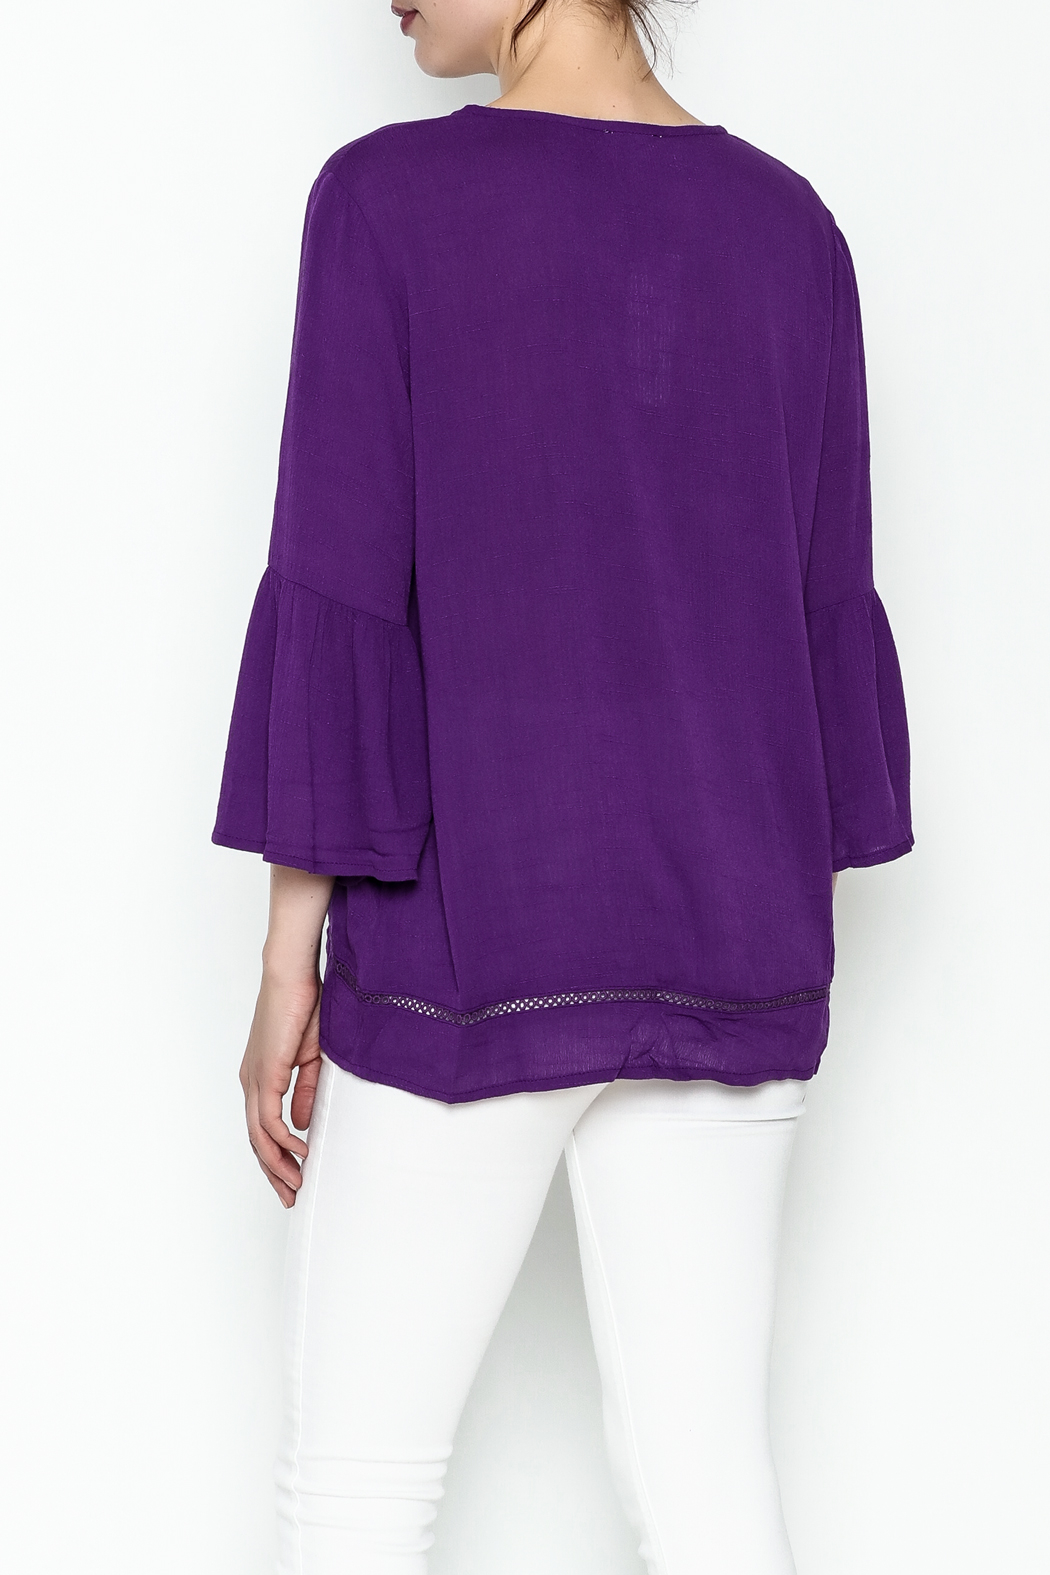 Jade Paisley Embrodered Top - Back Cropped Image